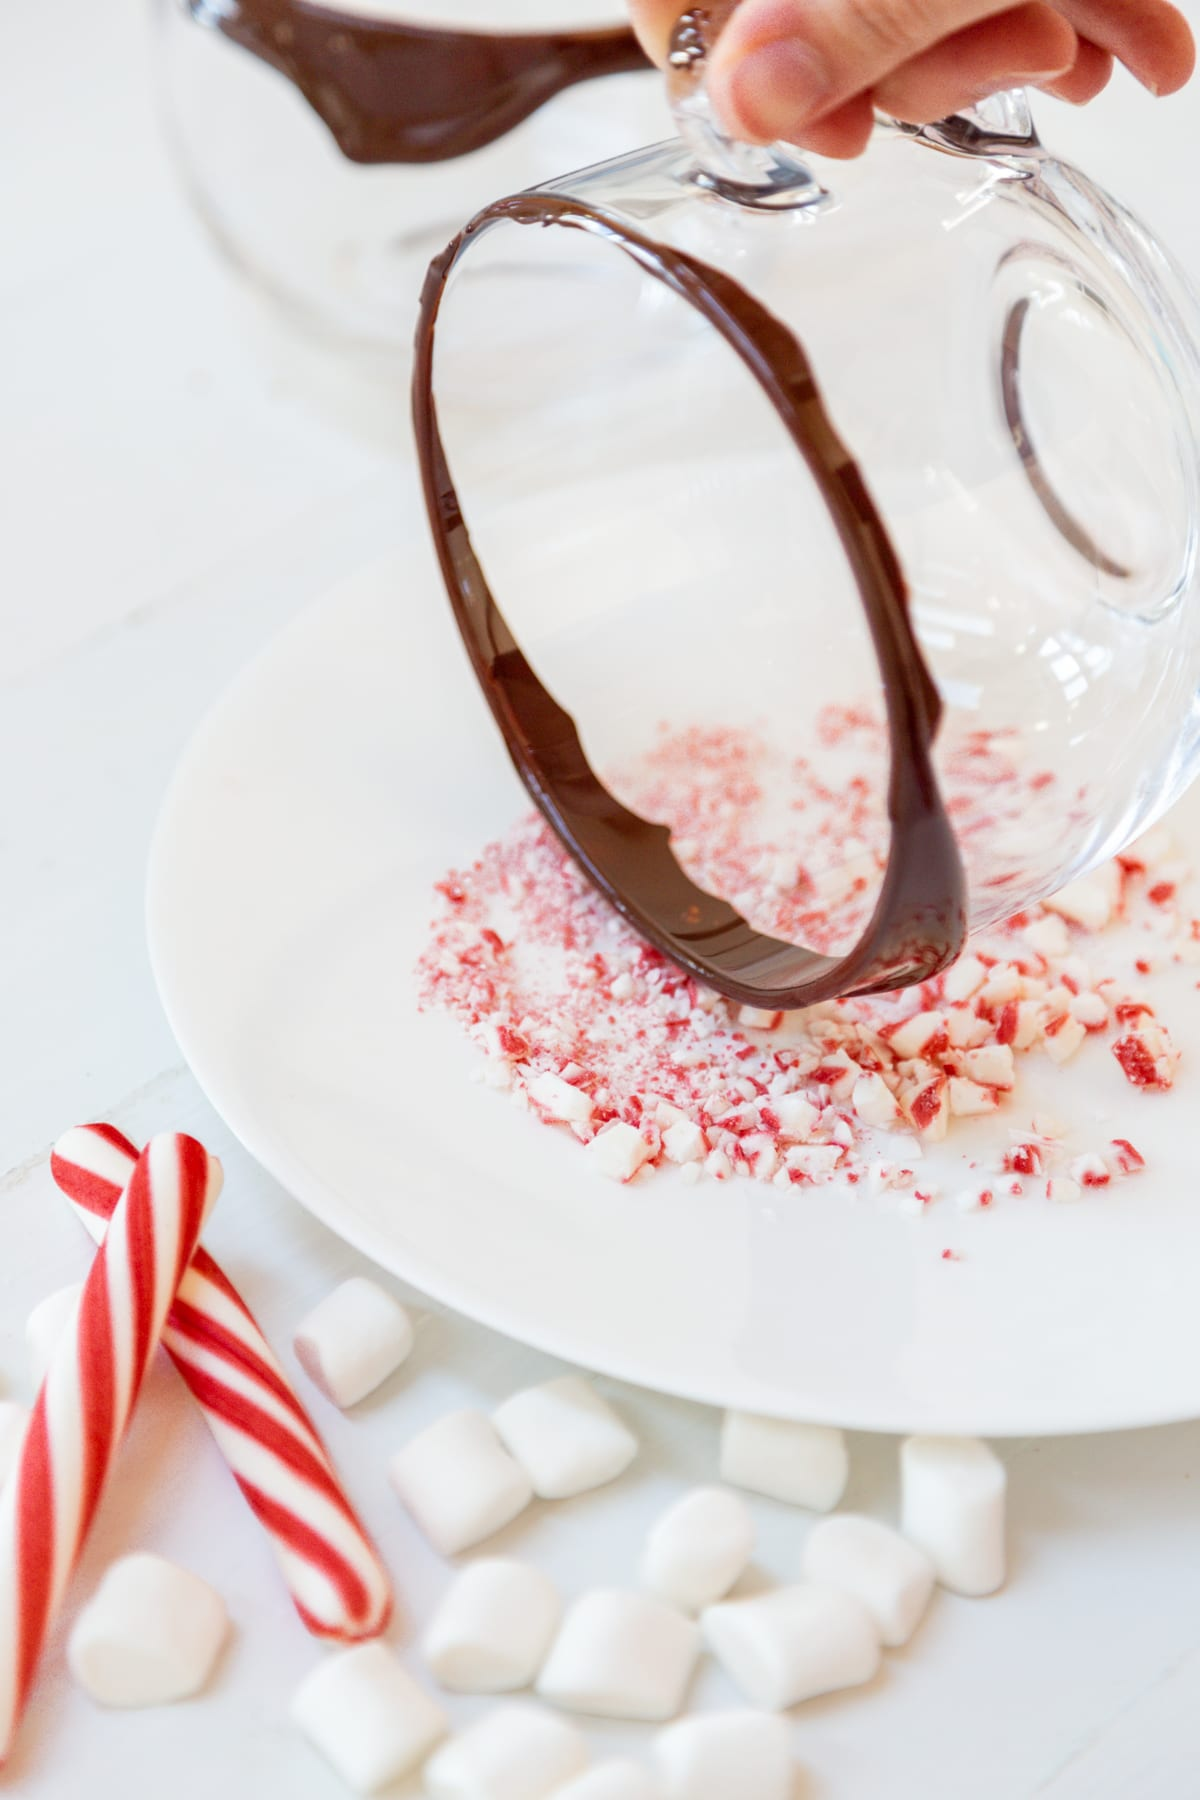 A clear glass mug rimmed with chocolate being dipped into crushed peppermint candy.